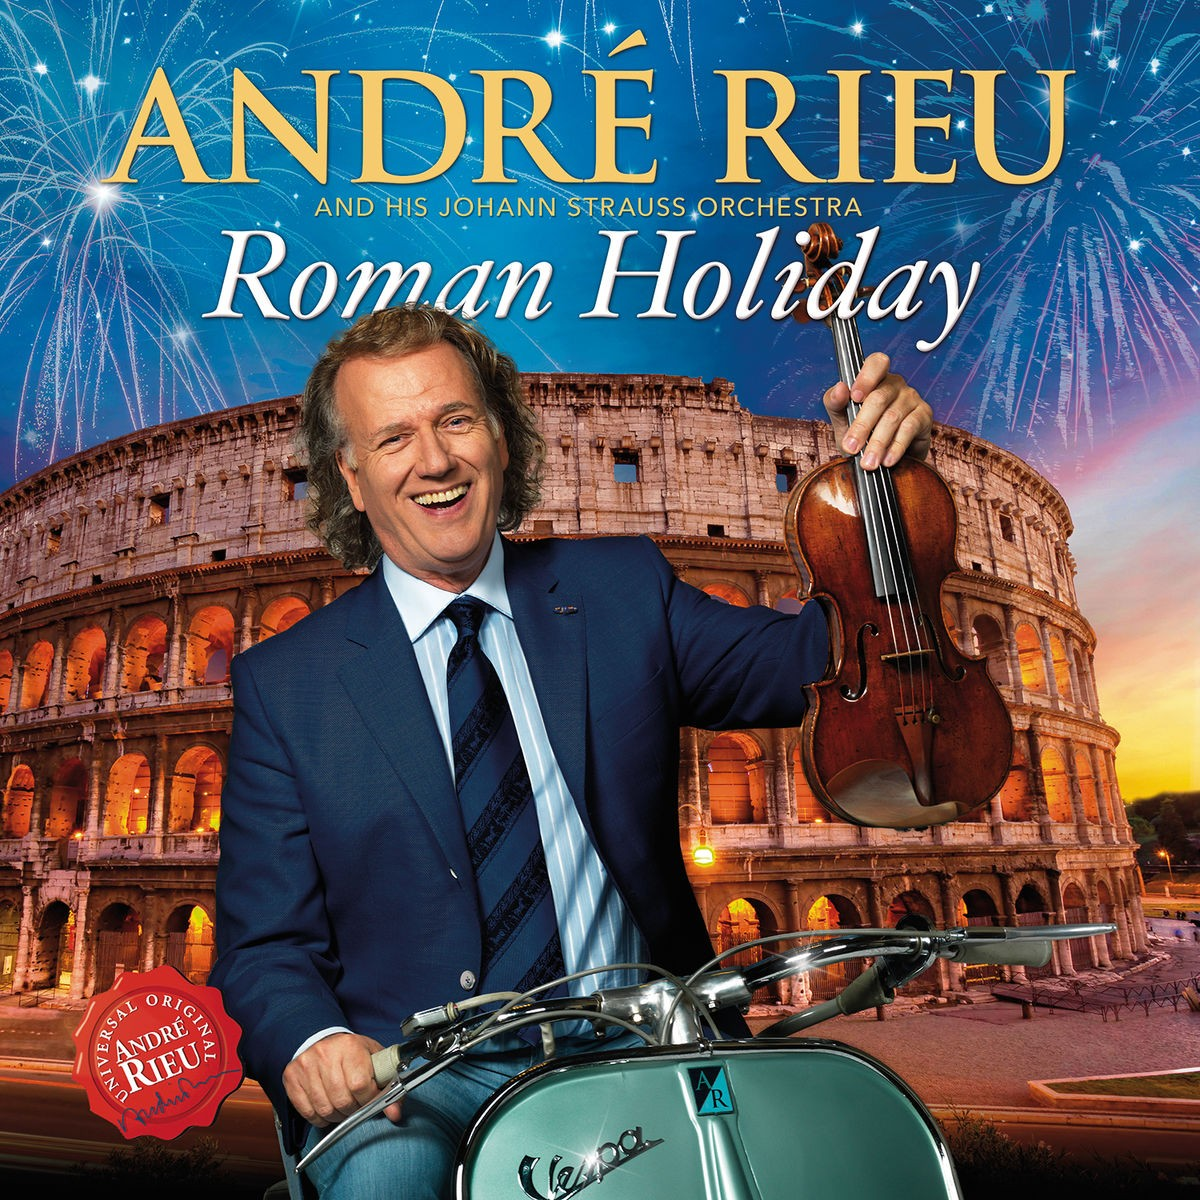 andre rieu johann strauss orchestra roman holiday cd echo 39 s record bar online store. Black Bedroom Furniture Sets. Home Design Ideas